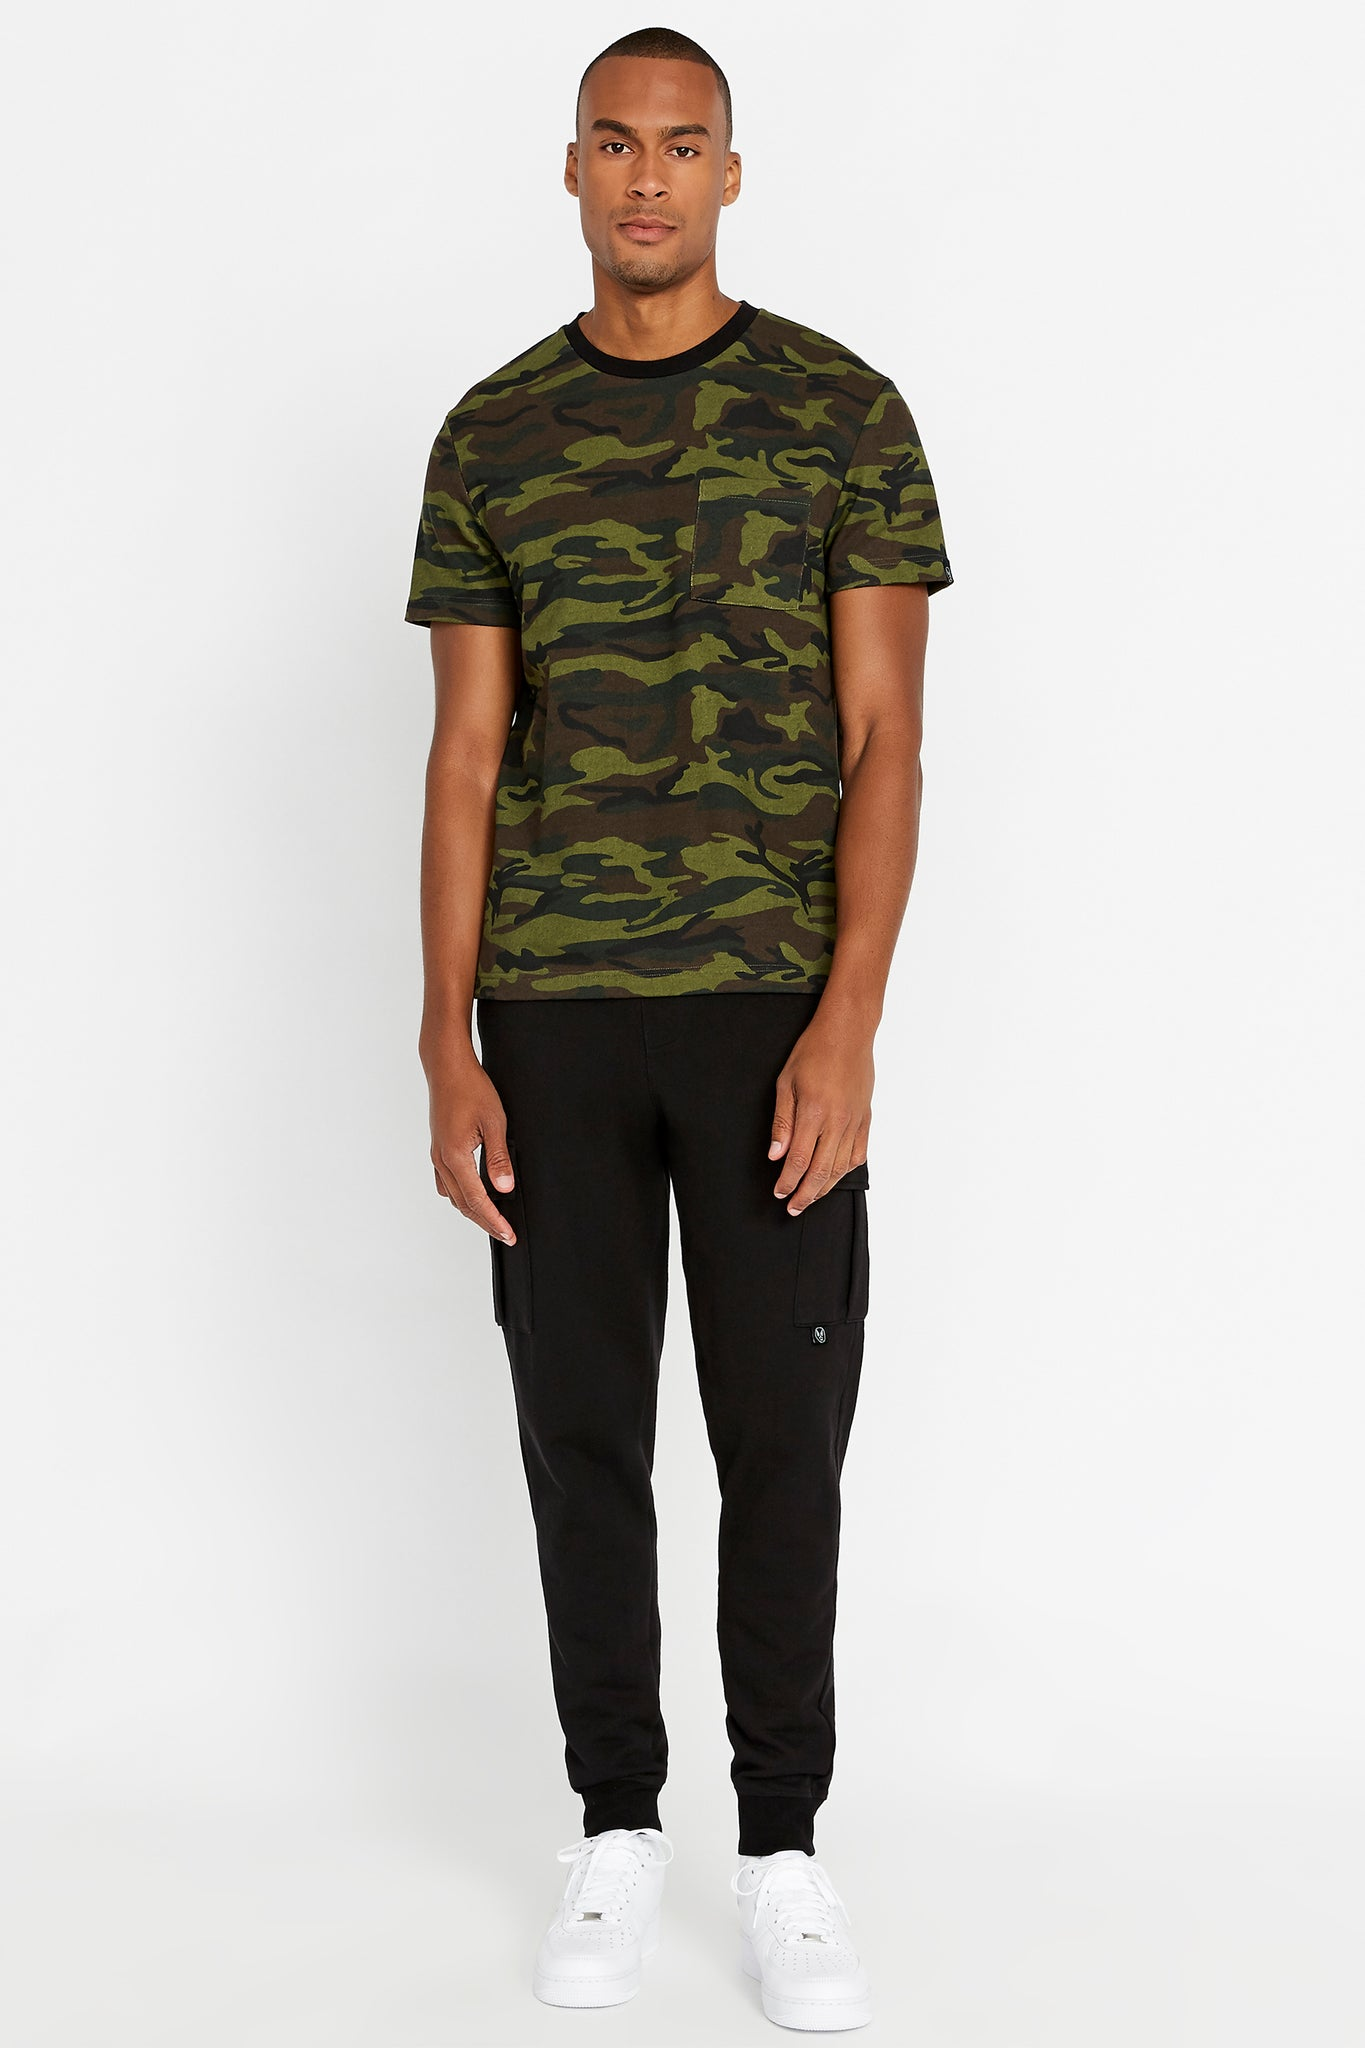 Full view of men wearing a camo print short sleeve crew T-shirt with chest pocket and black pants